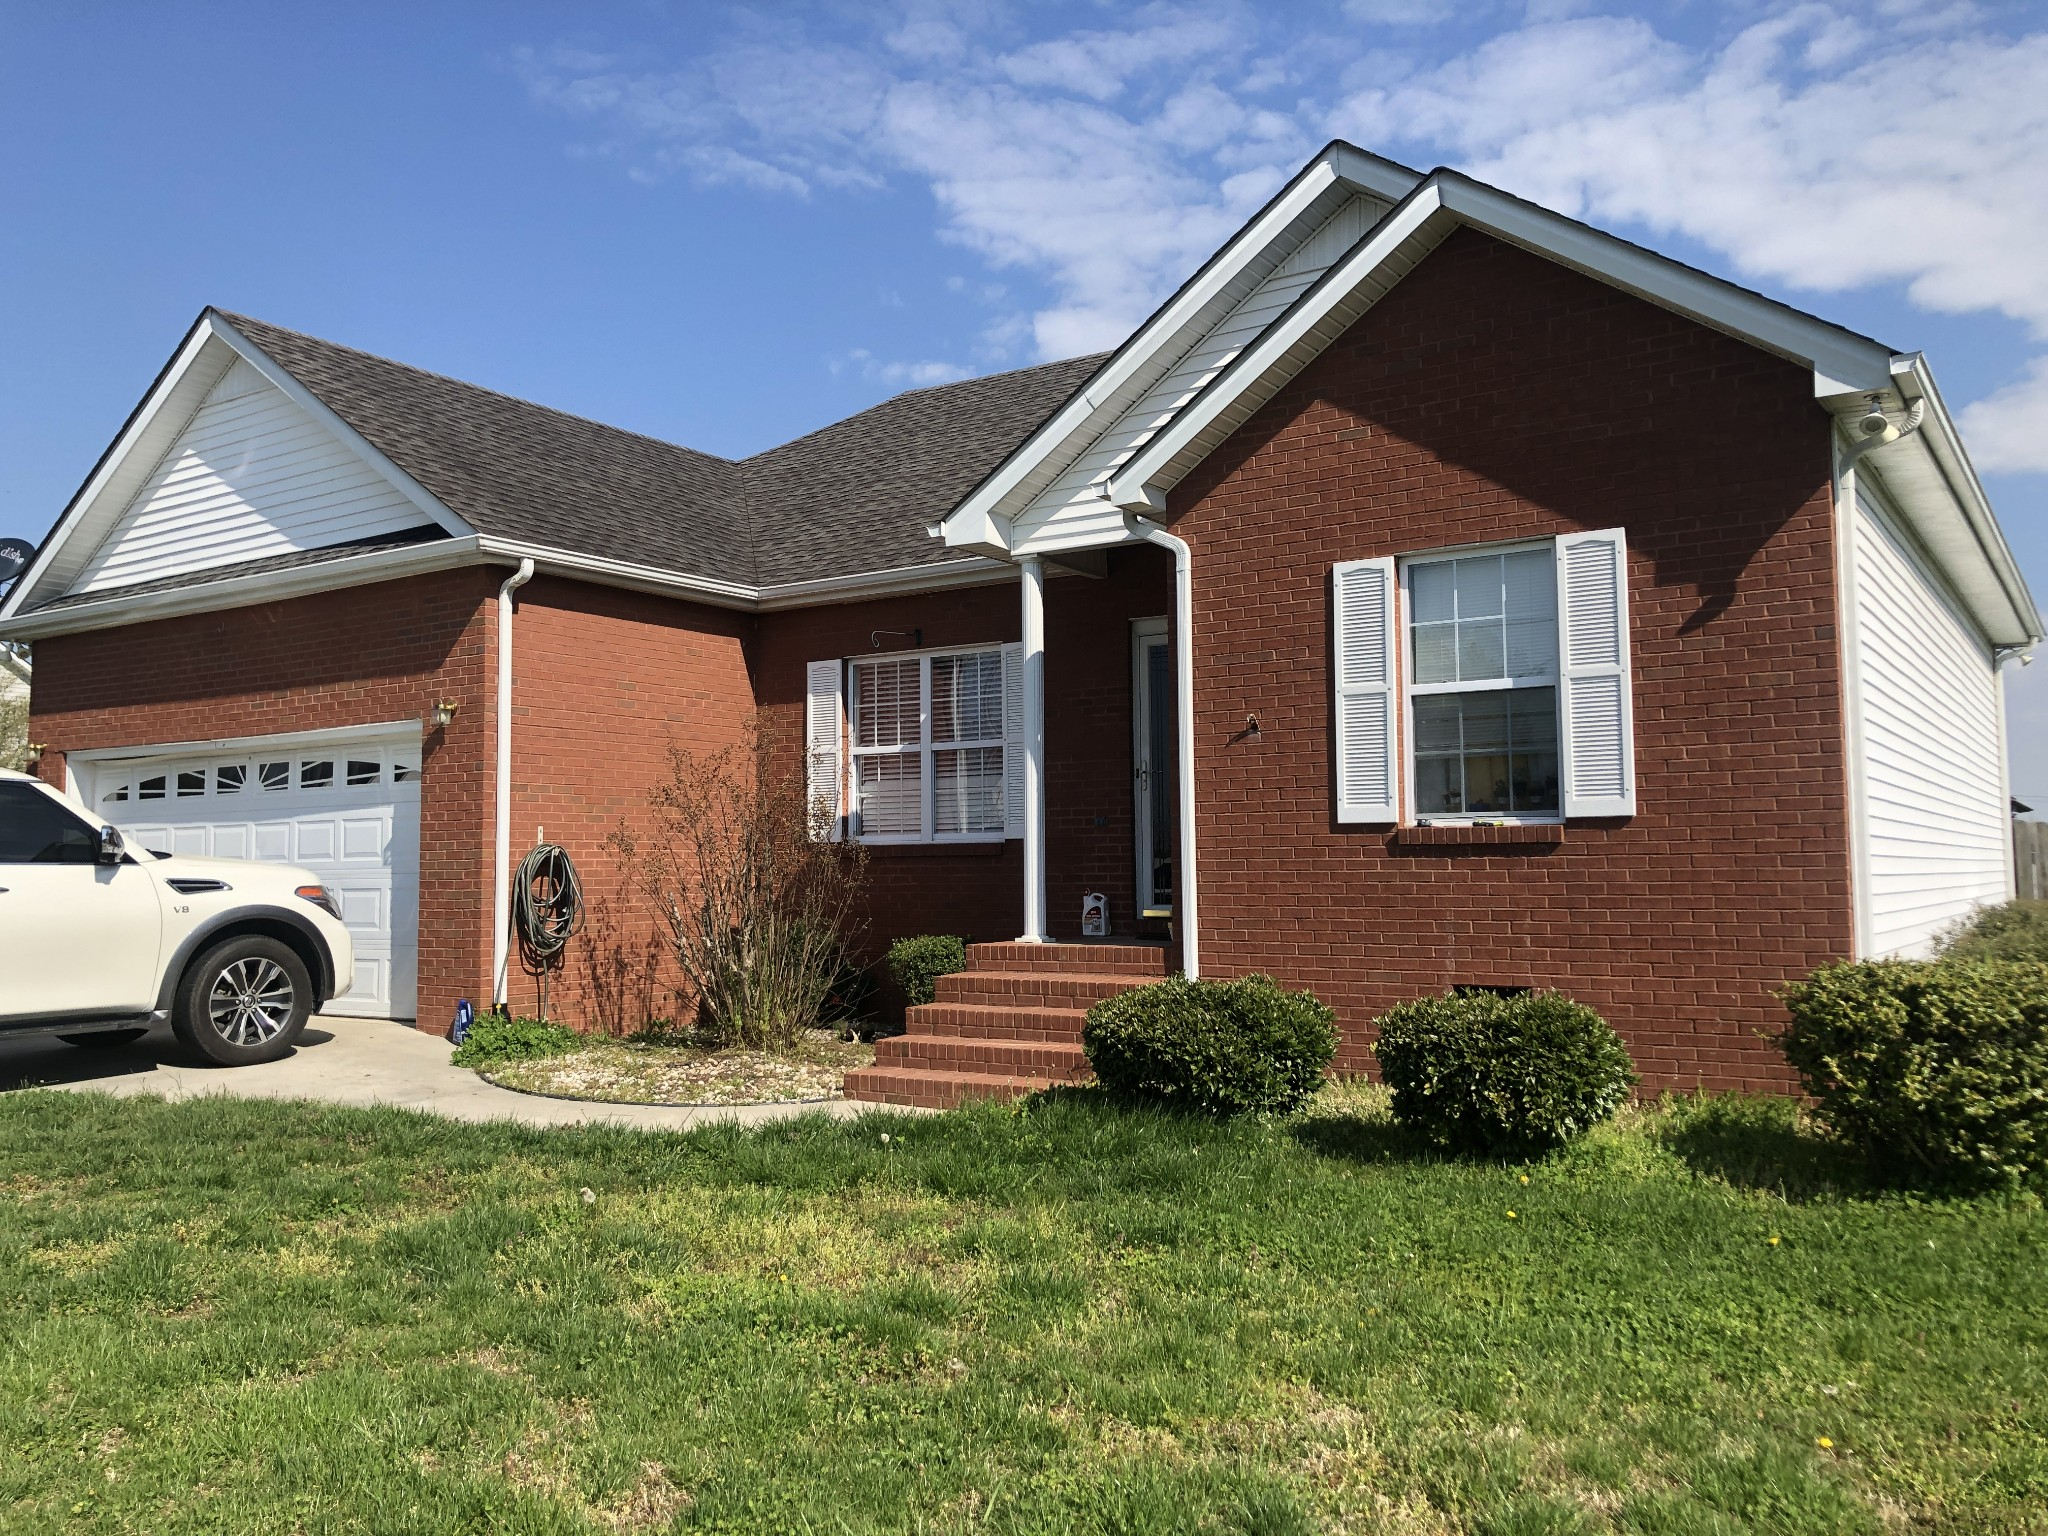 161 Riverwood Dr Property Photo - Manchester, TN real estate listing